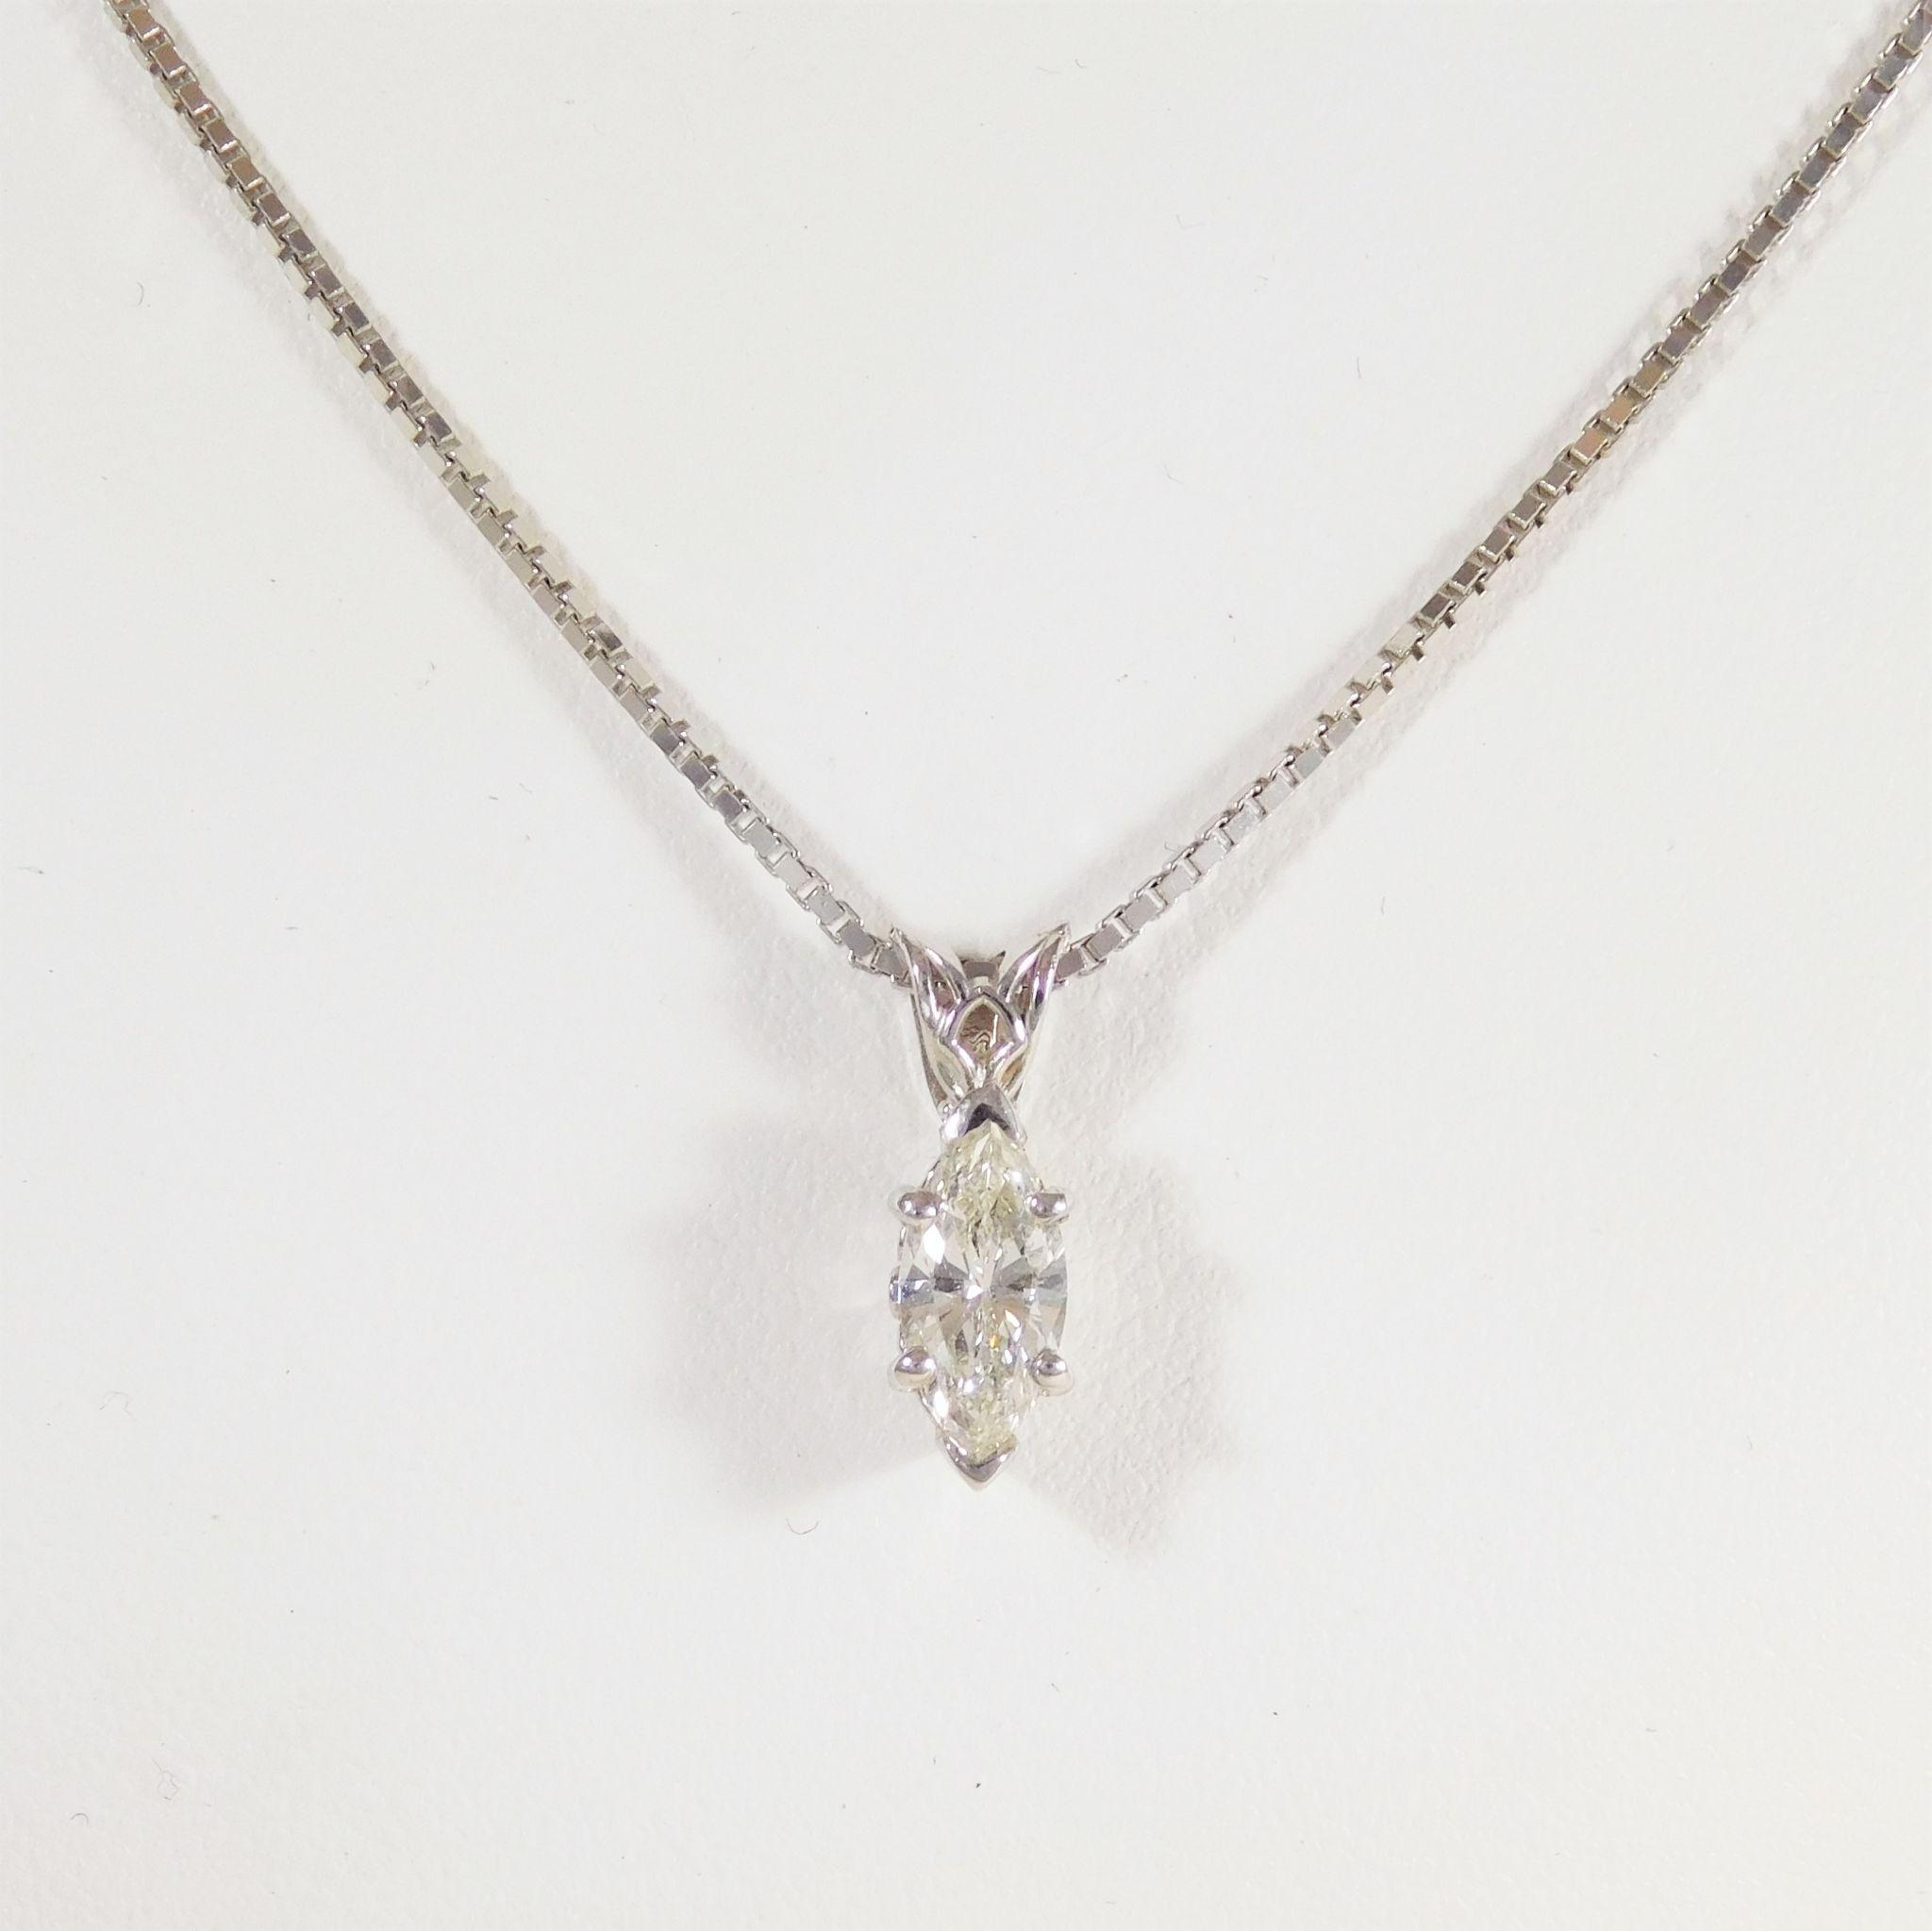 pendant products and necklace jewelry diamond tiffany necklaces platinum co marquise enlarged